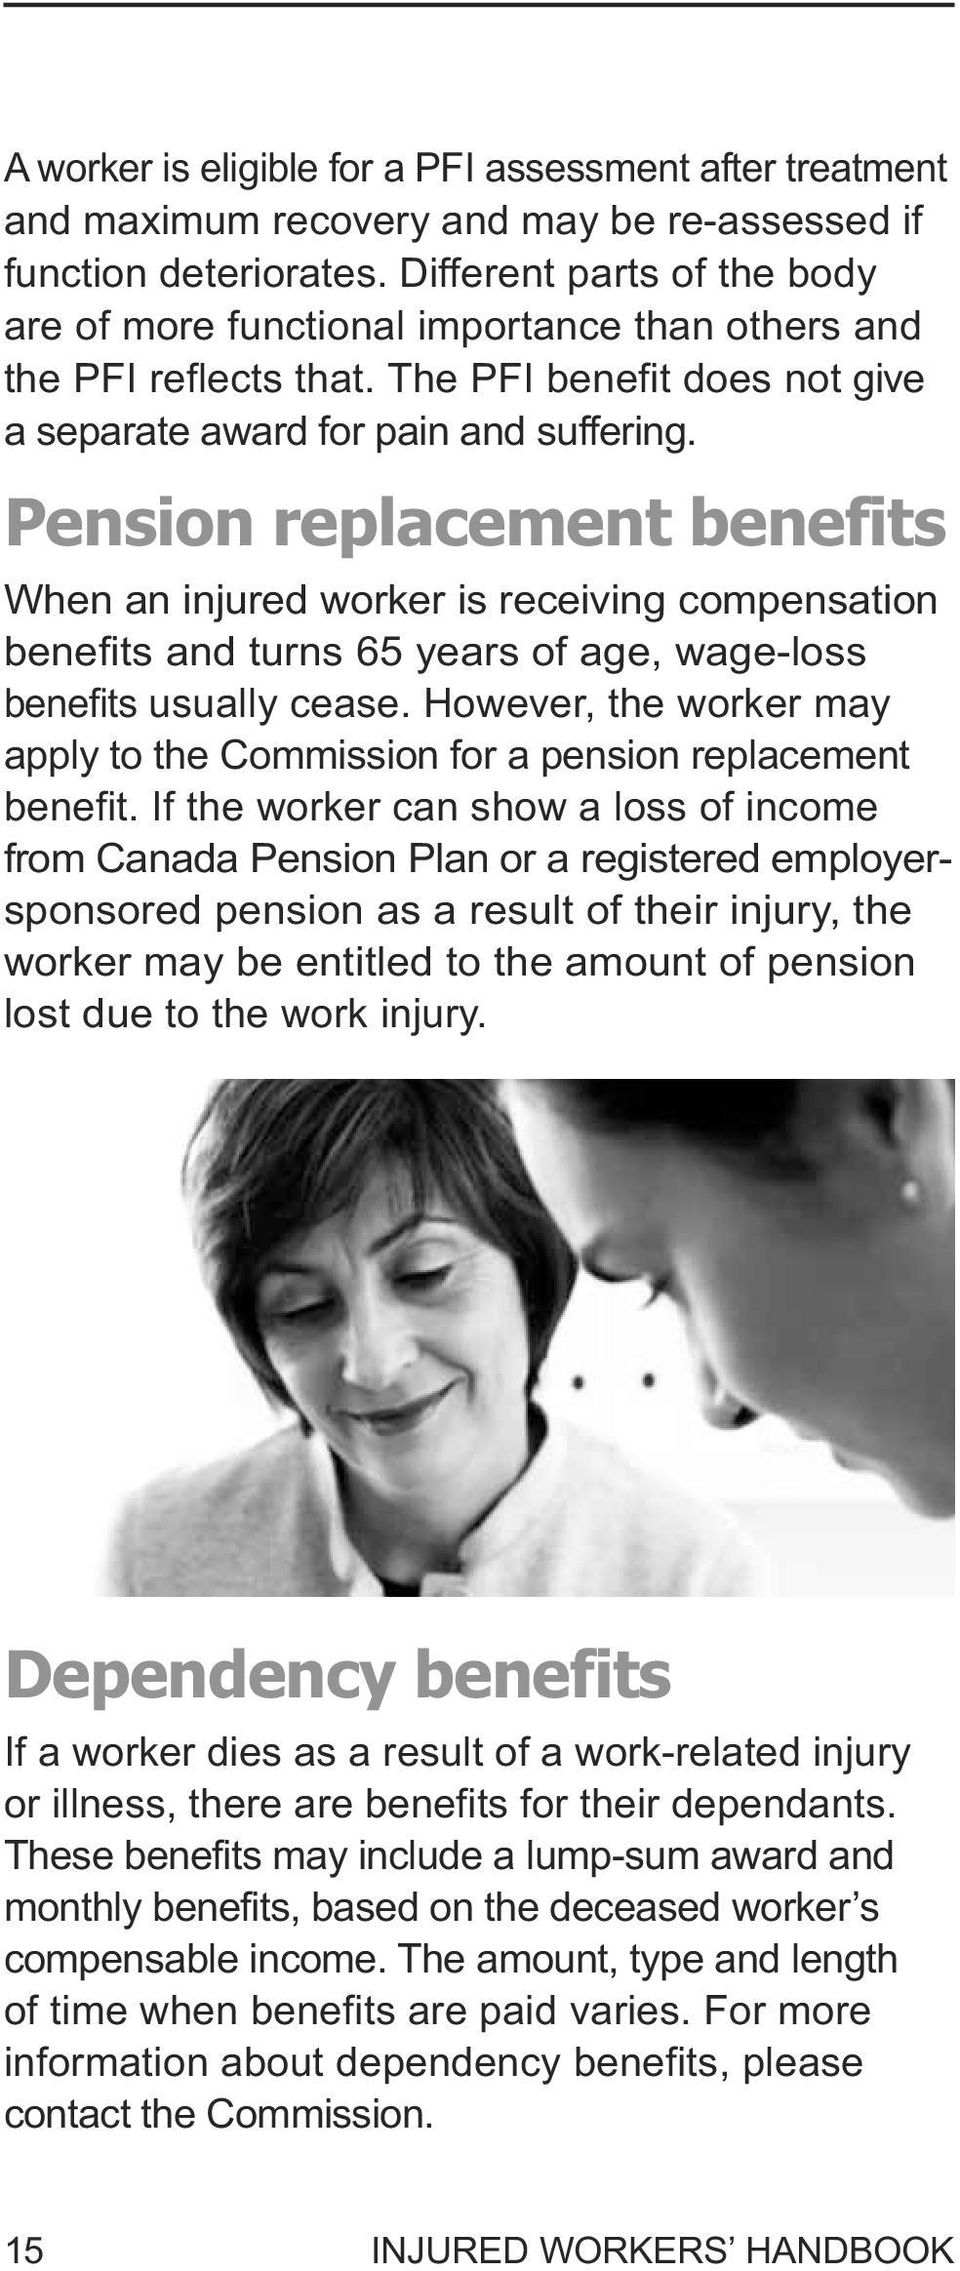 Pension replacement benefits When an injured worker is receiving compensation benefits and turns 65 years of age, wage-loss benefits usually cease.